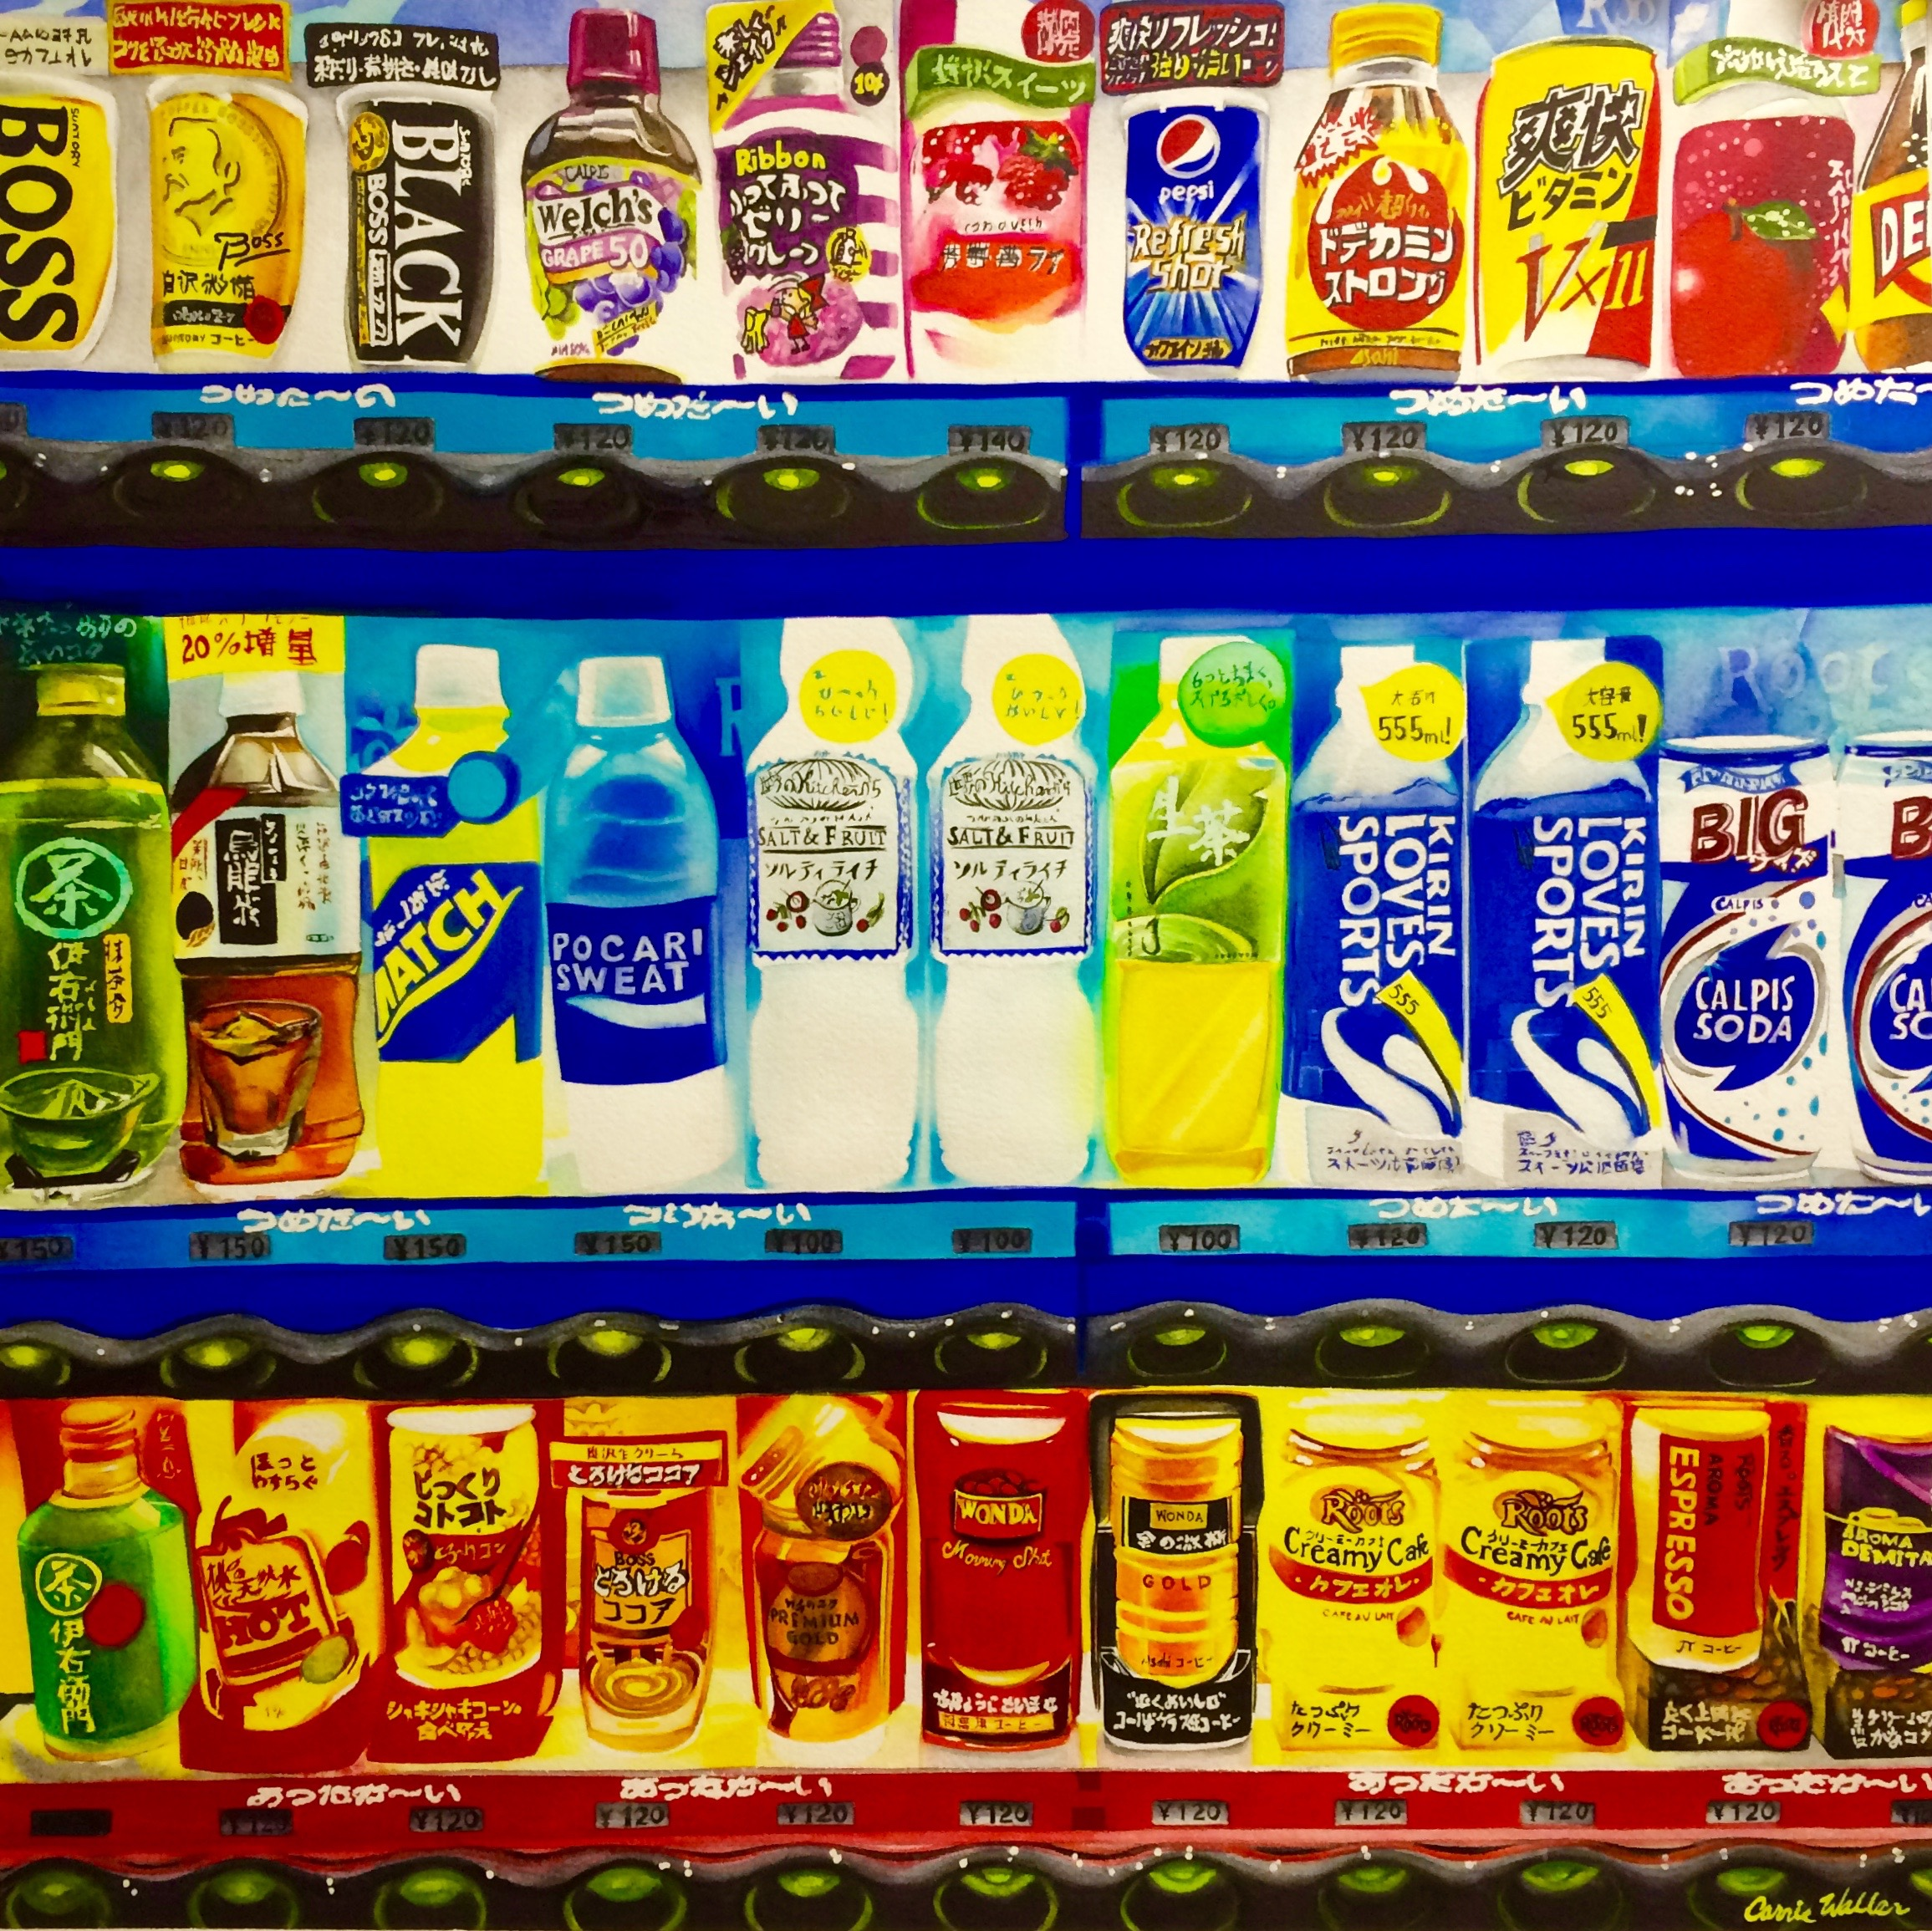 waller-carrie-hot-and-cold-japanese-vending-machine